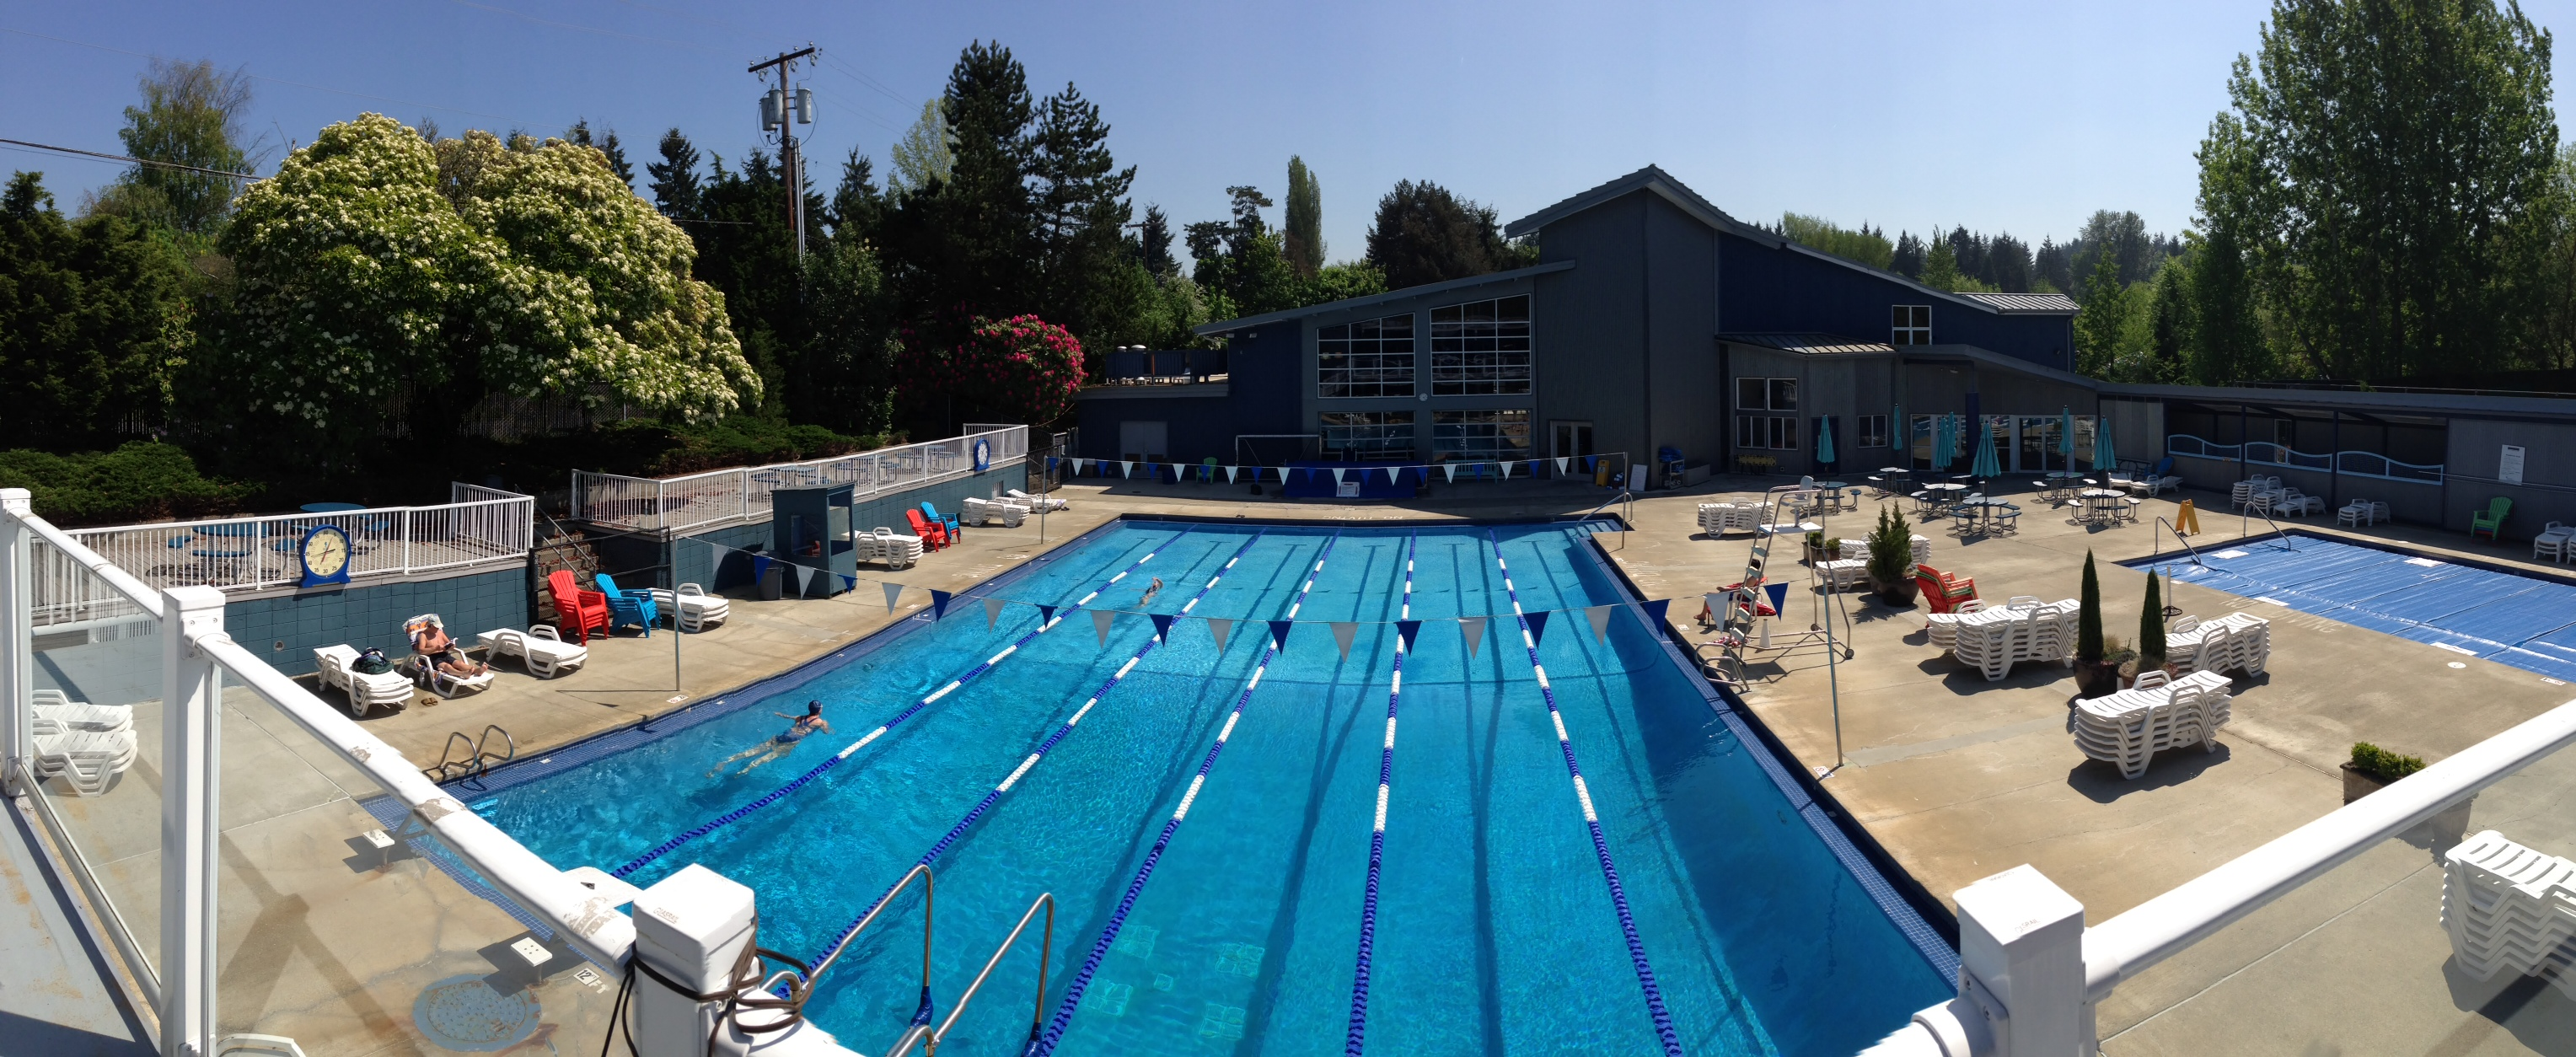 Samena Swim Amp Recreation Club Coupons Near Me In Bellevue